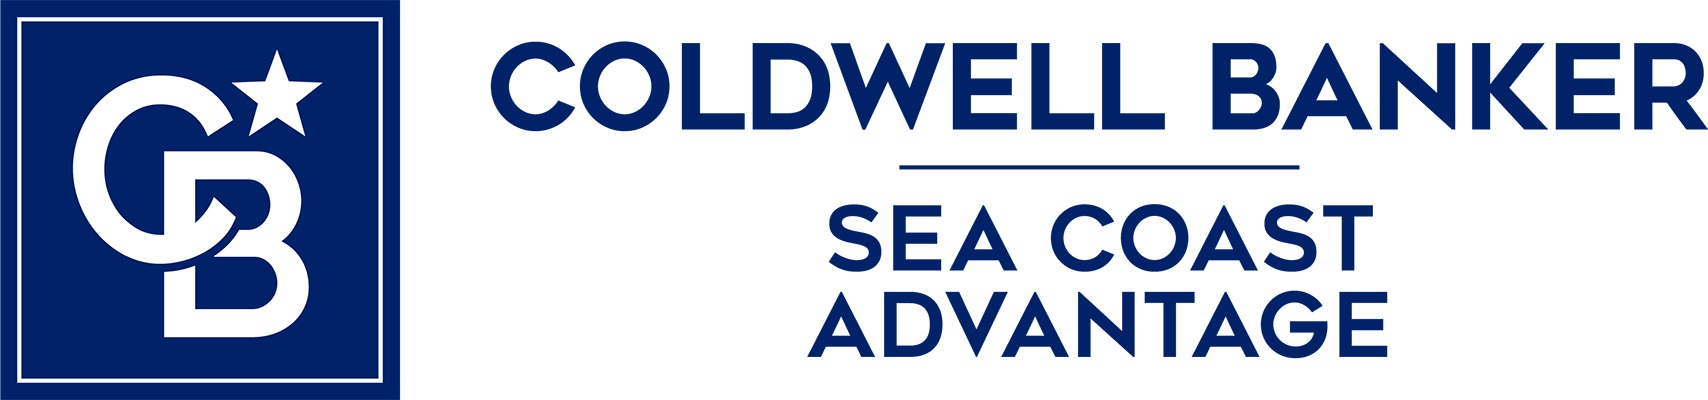 Karen Schwartz - Coldwell Banker Sea Coast Advantage Realty Logo